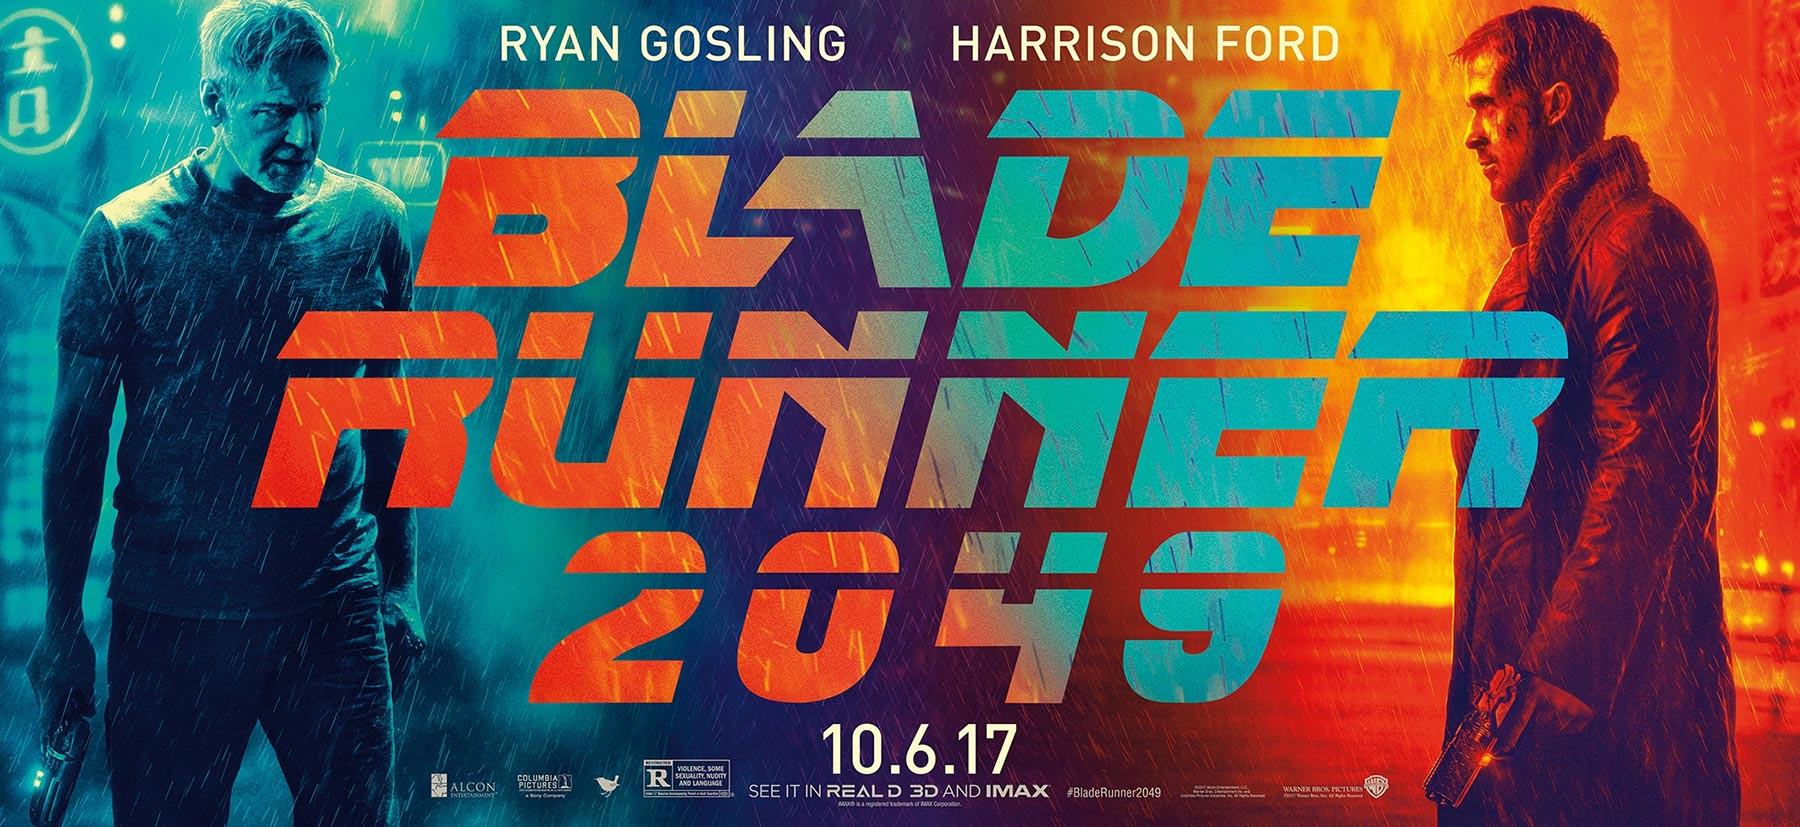 Blade Runner 2049 (2017) Poster #16 - Trailer Addict